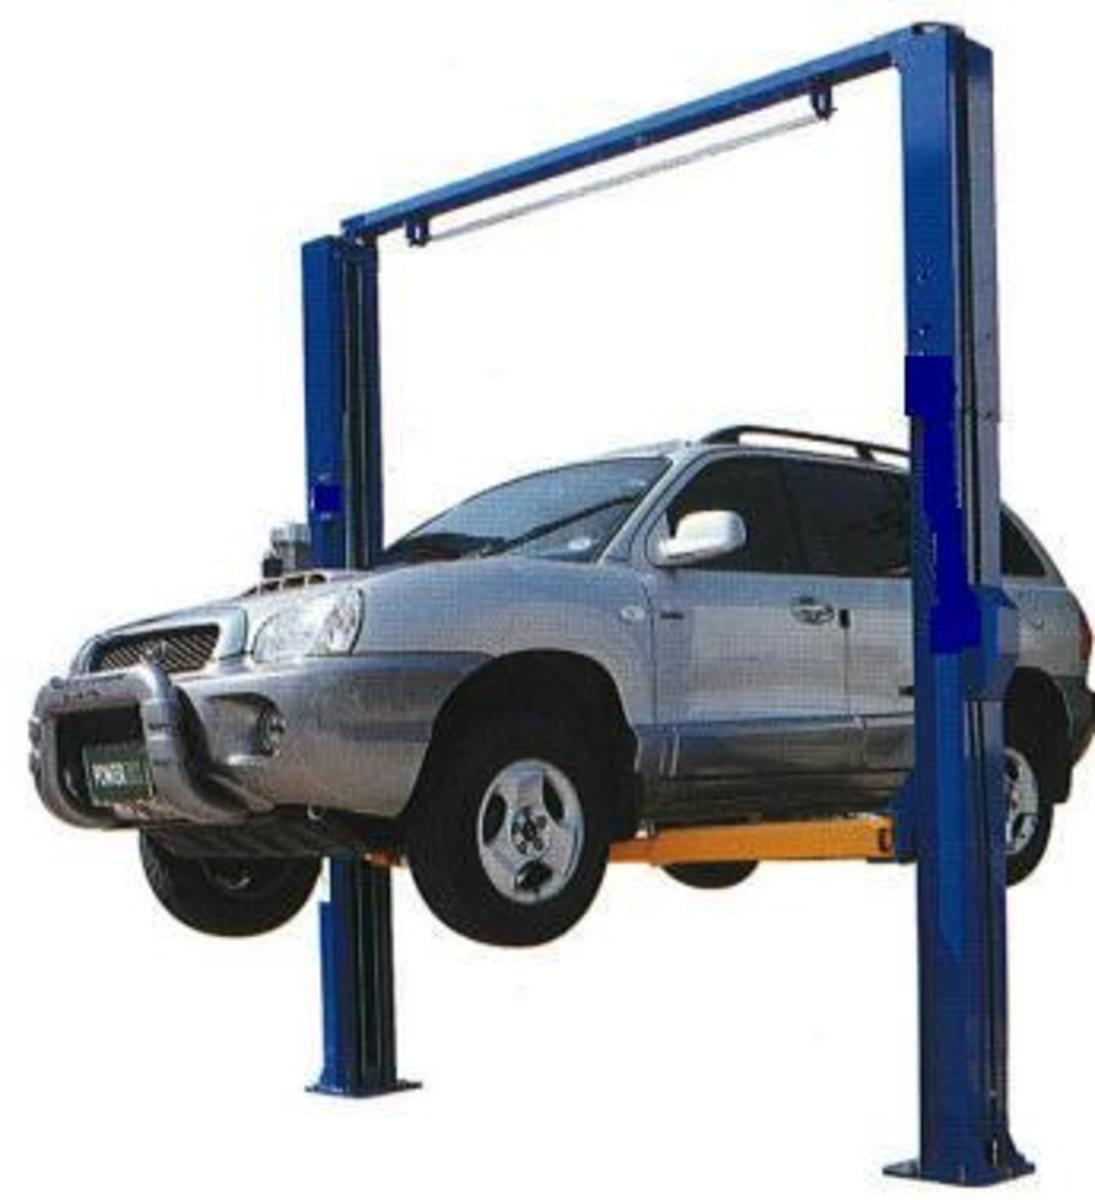 This type of clear-span lift or hoist requires over 14' ceiling.